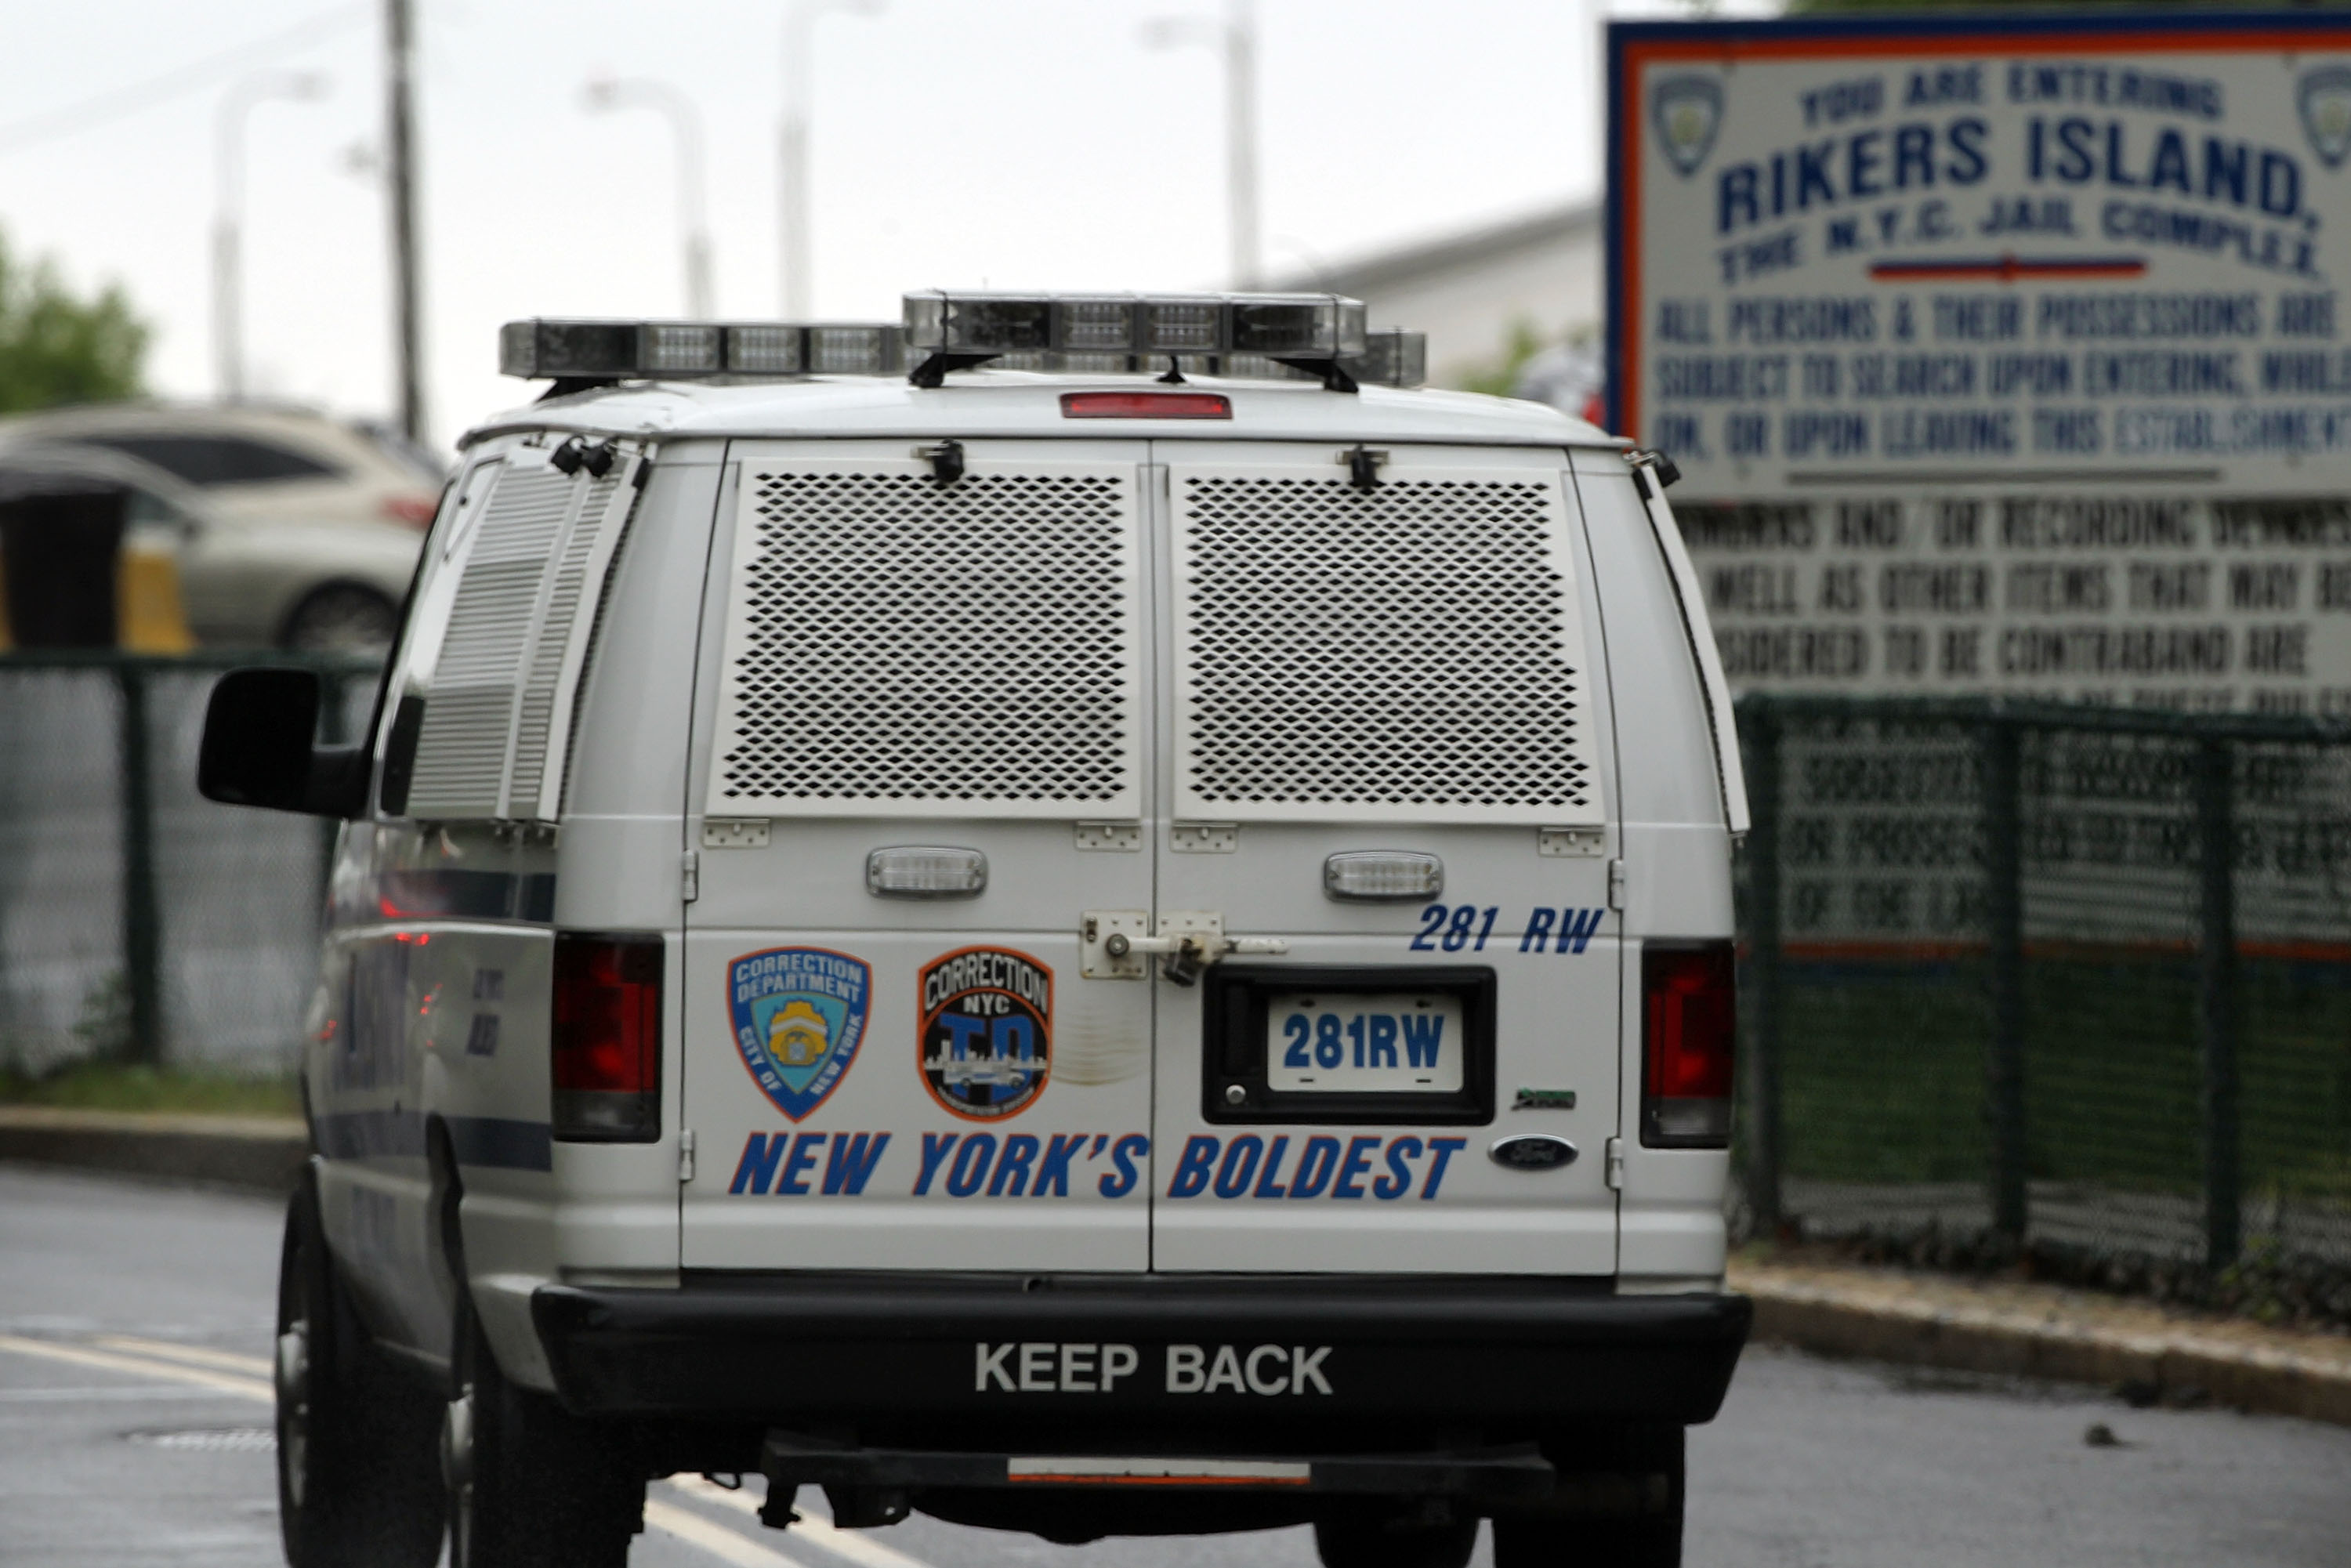 A transport van arrives at the Rikers Island jail in New York City. (Getty)